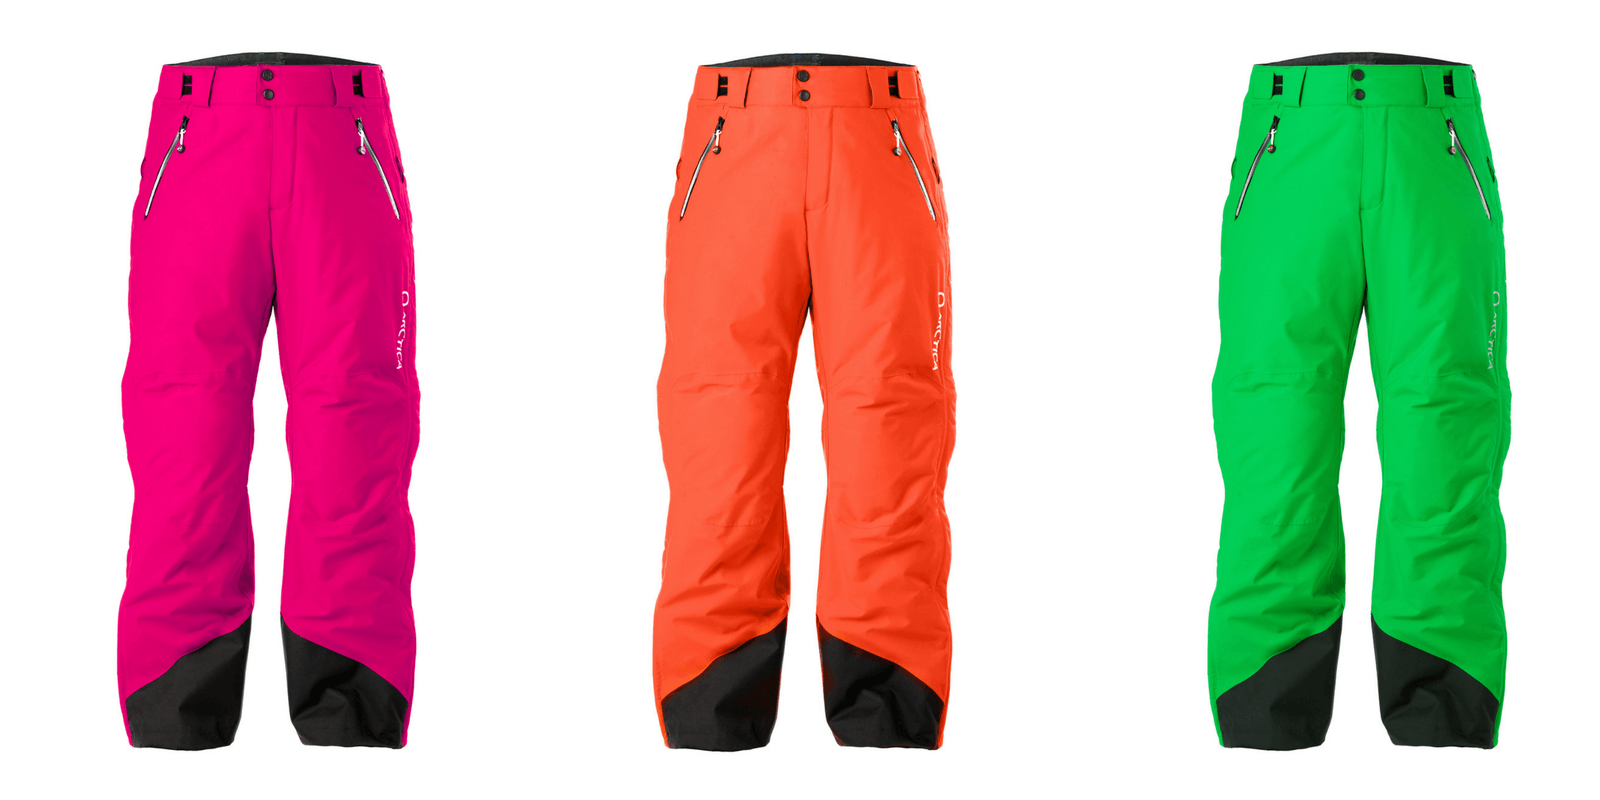 Arctica Side Zip 2.0 neon pant colors for 2017-18. Hot Pink, Tangerine and Lime.